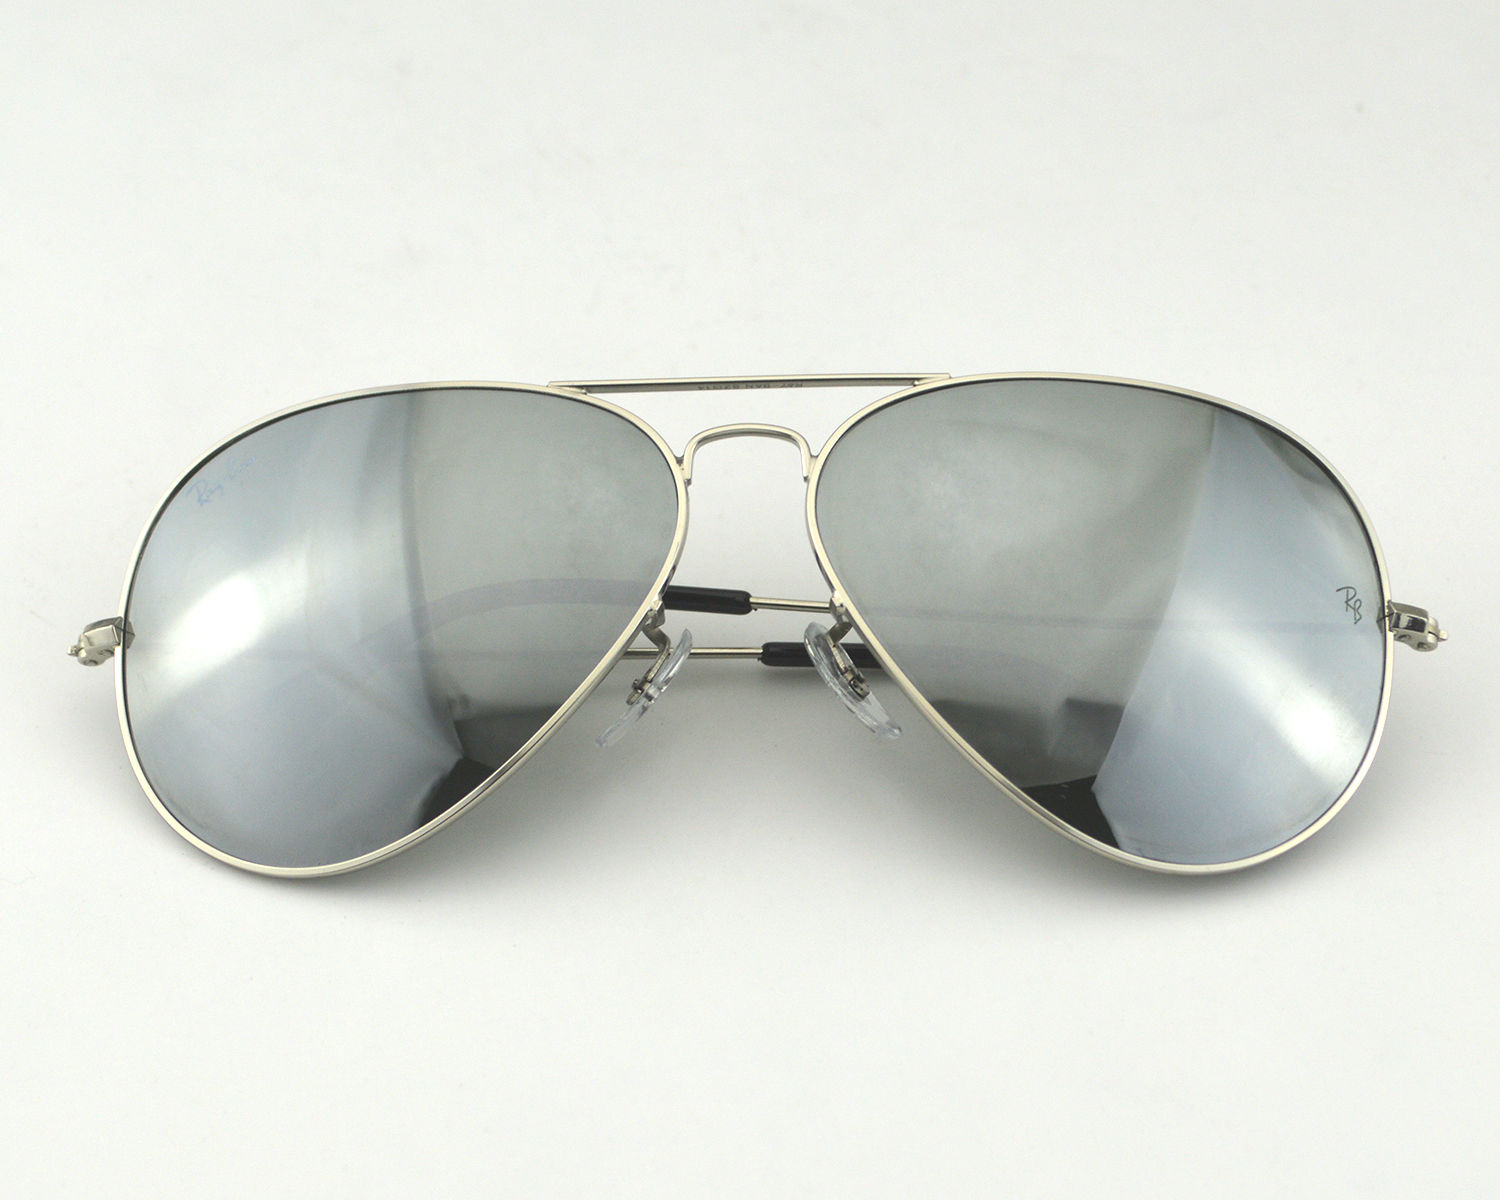 ray ban sunglasses aviator rb3026  ray ban rb3026 aviator large metal Ⅱw3277 silver mirror lens sunglasses 62mm